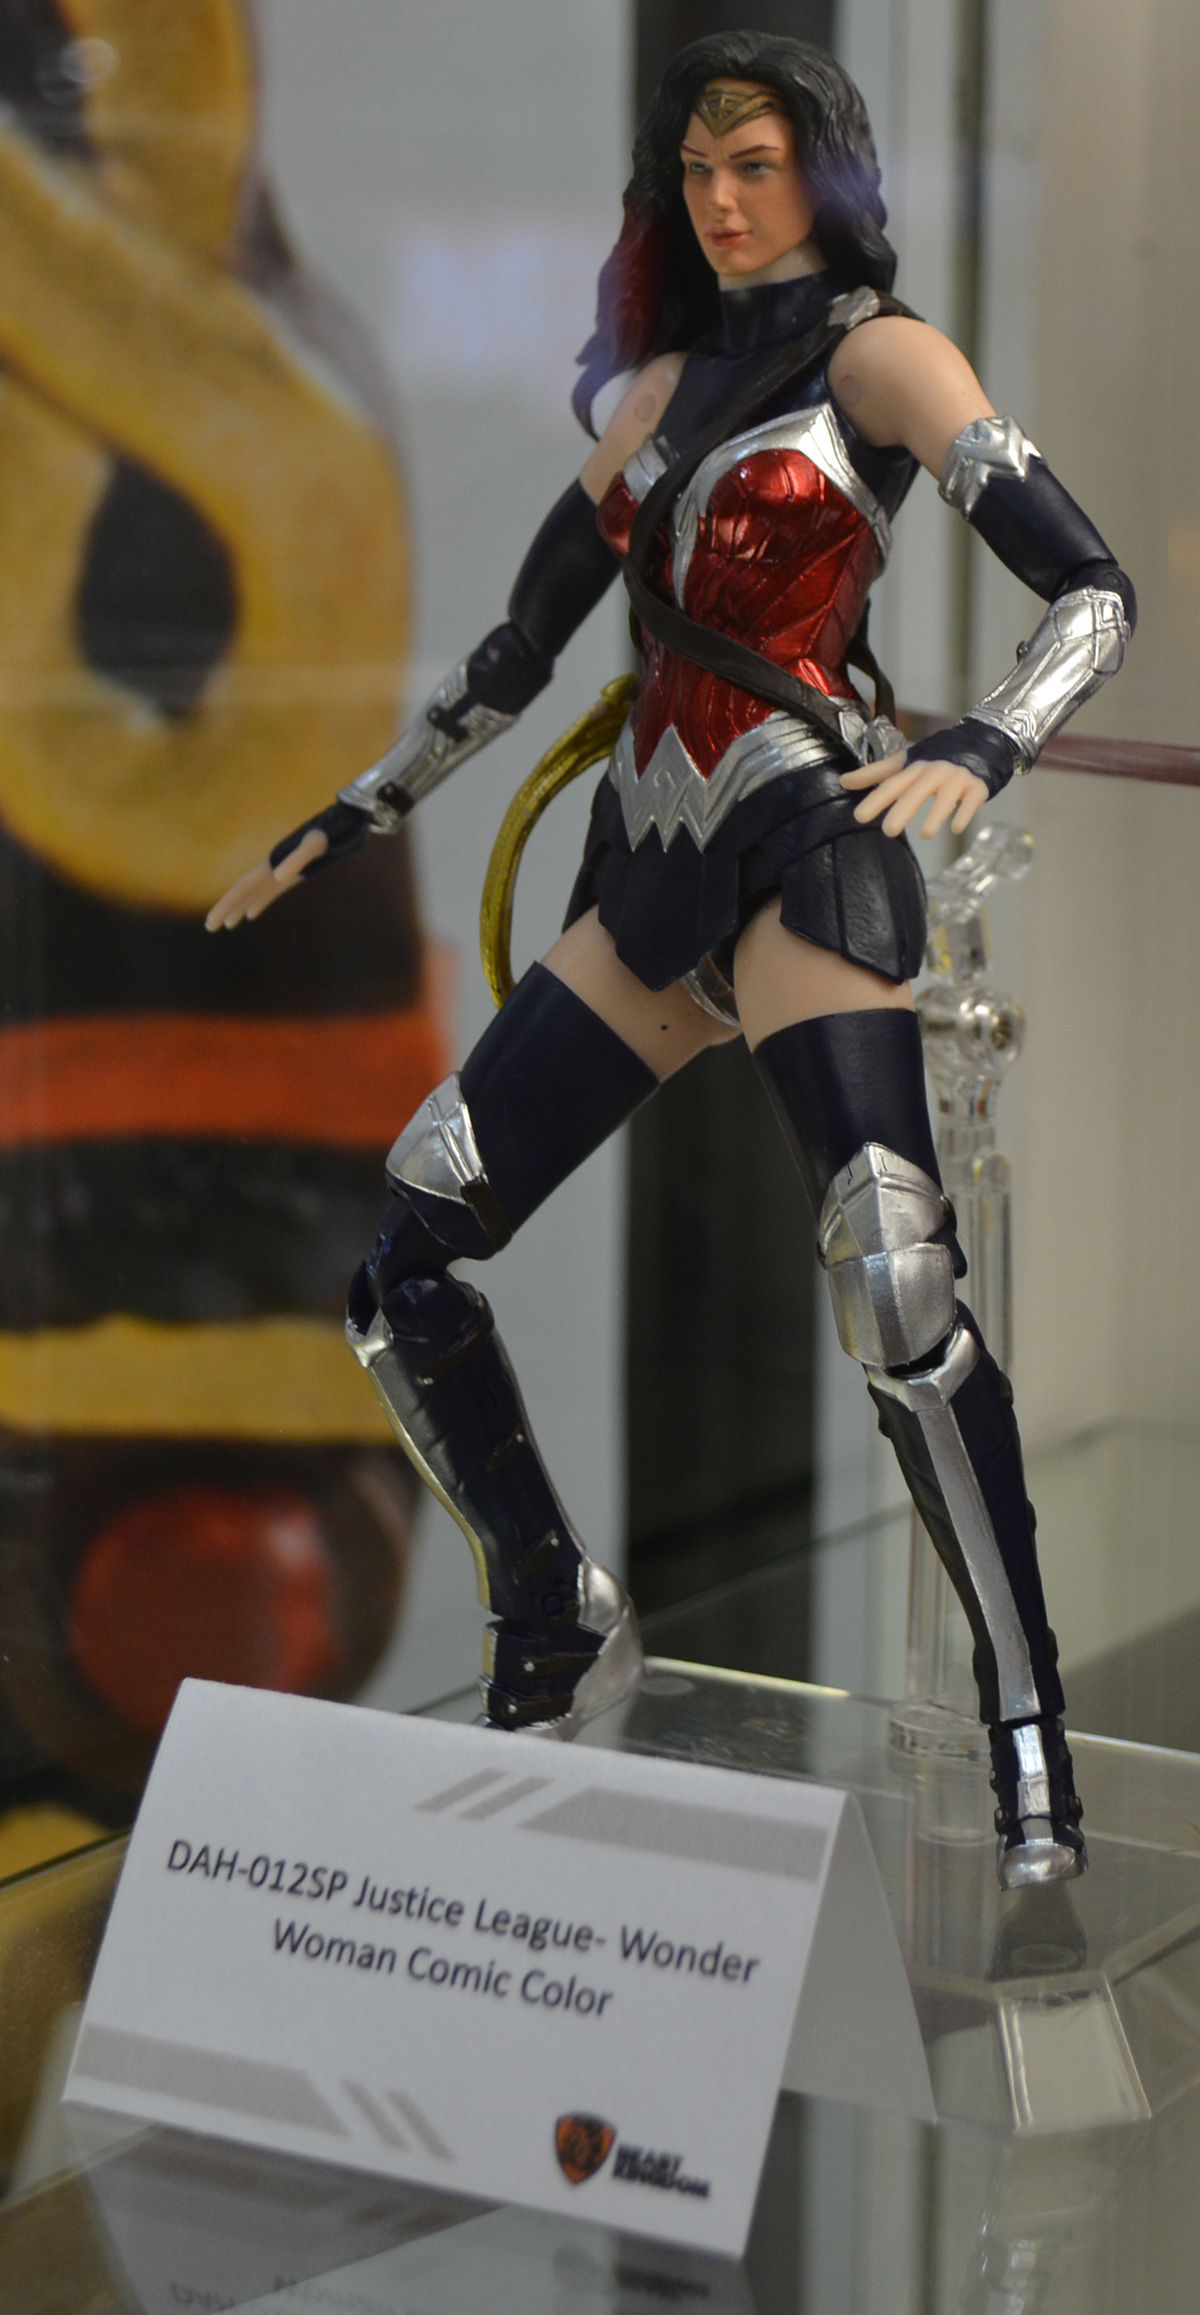 New Toys On Display At The Previewsworld Sdcc Booth Previews World